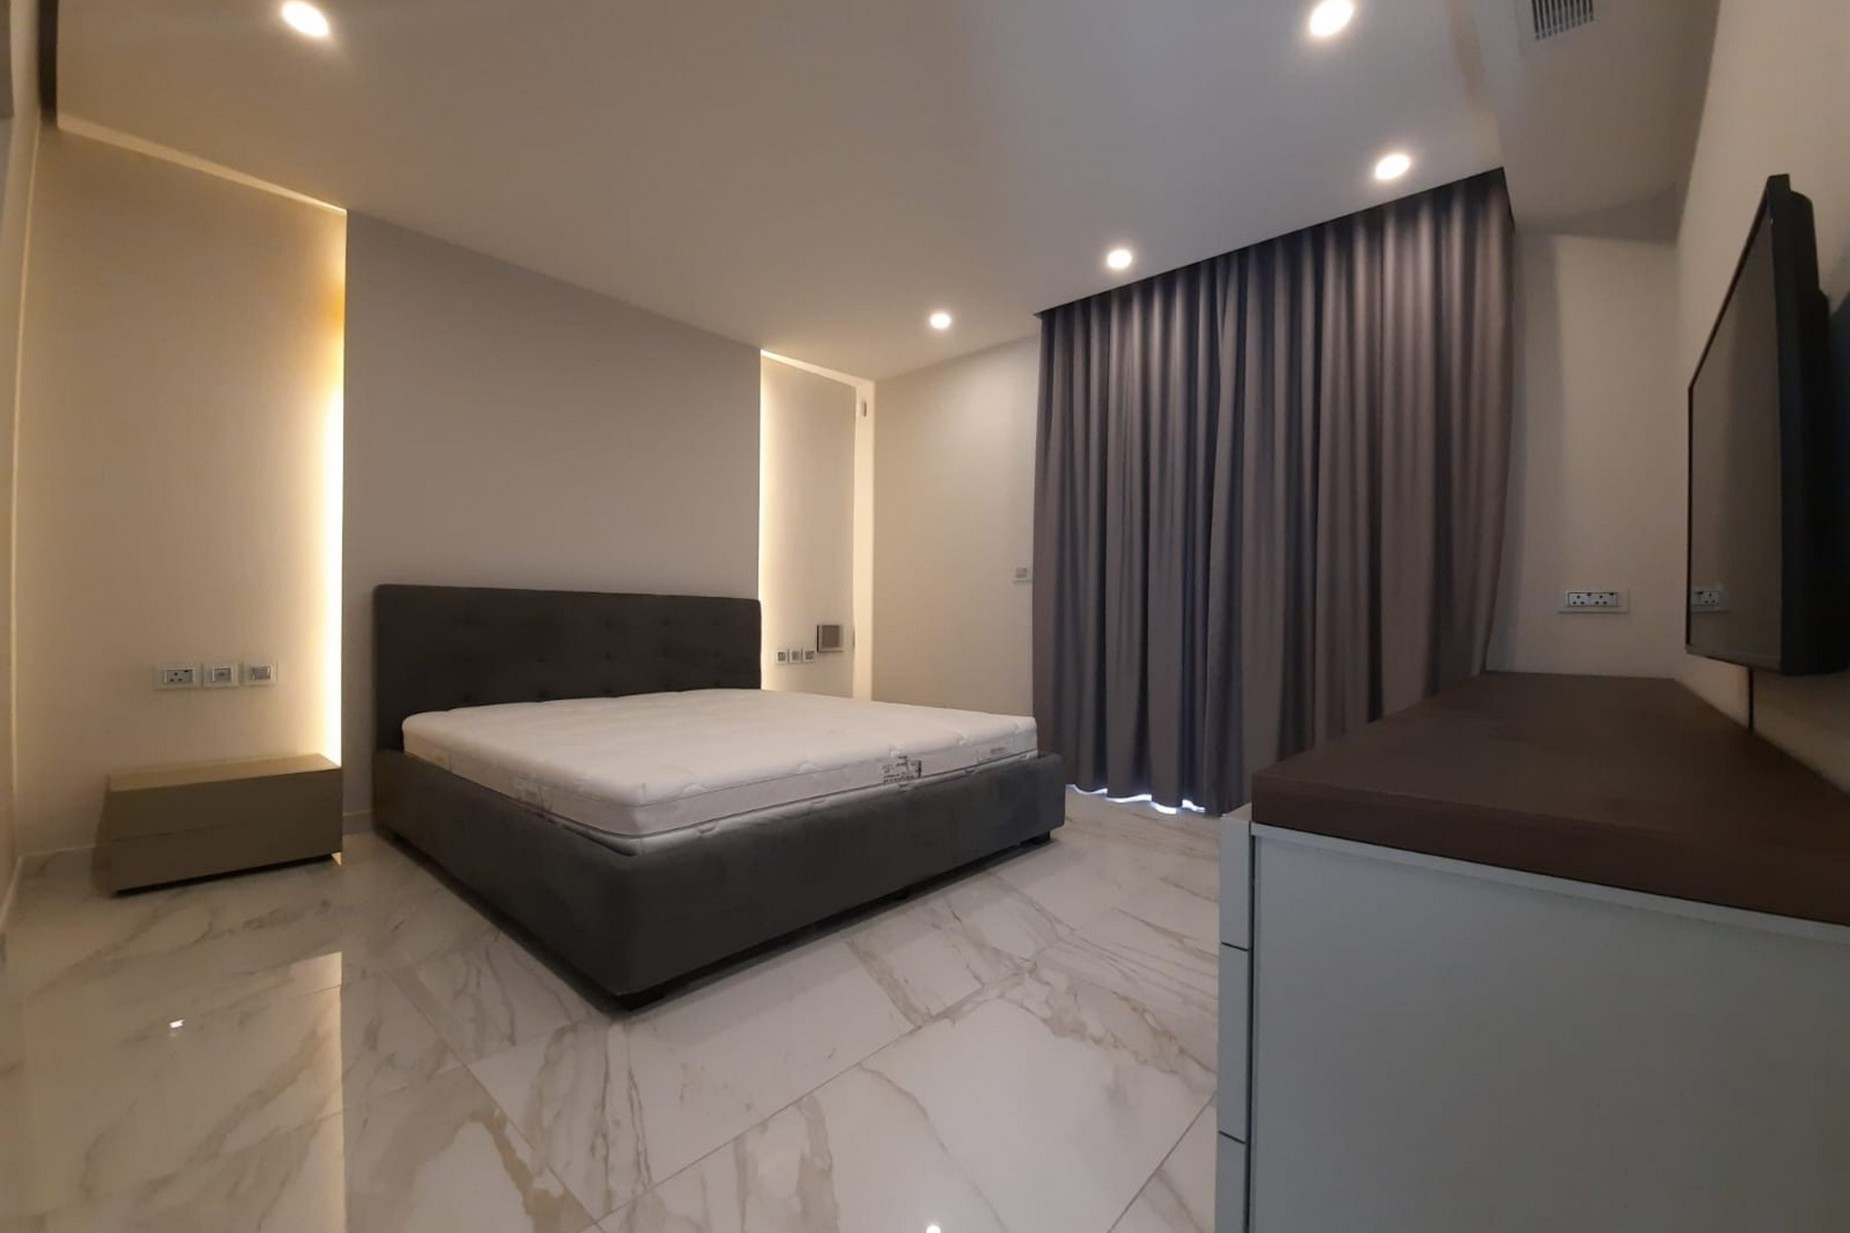 3 bed Penthouse For Rent in Rabat, Rabat - thumb 13